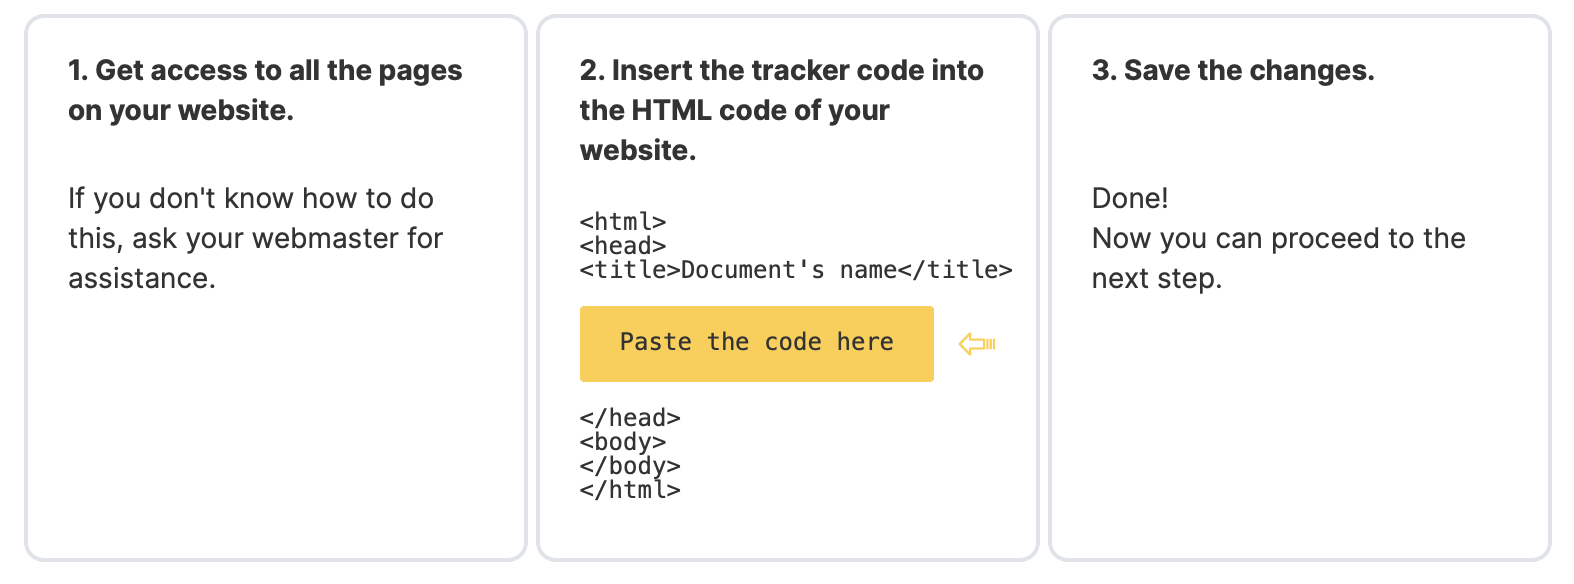 How to manually add the tracking code to your website's HTML